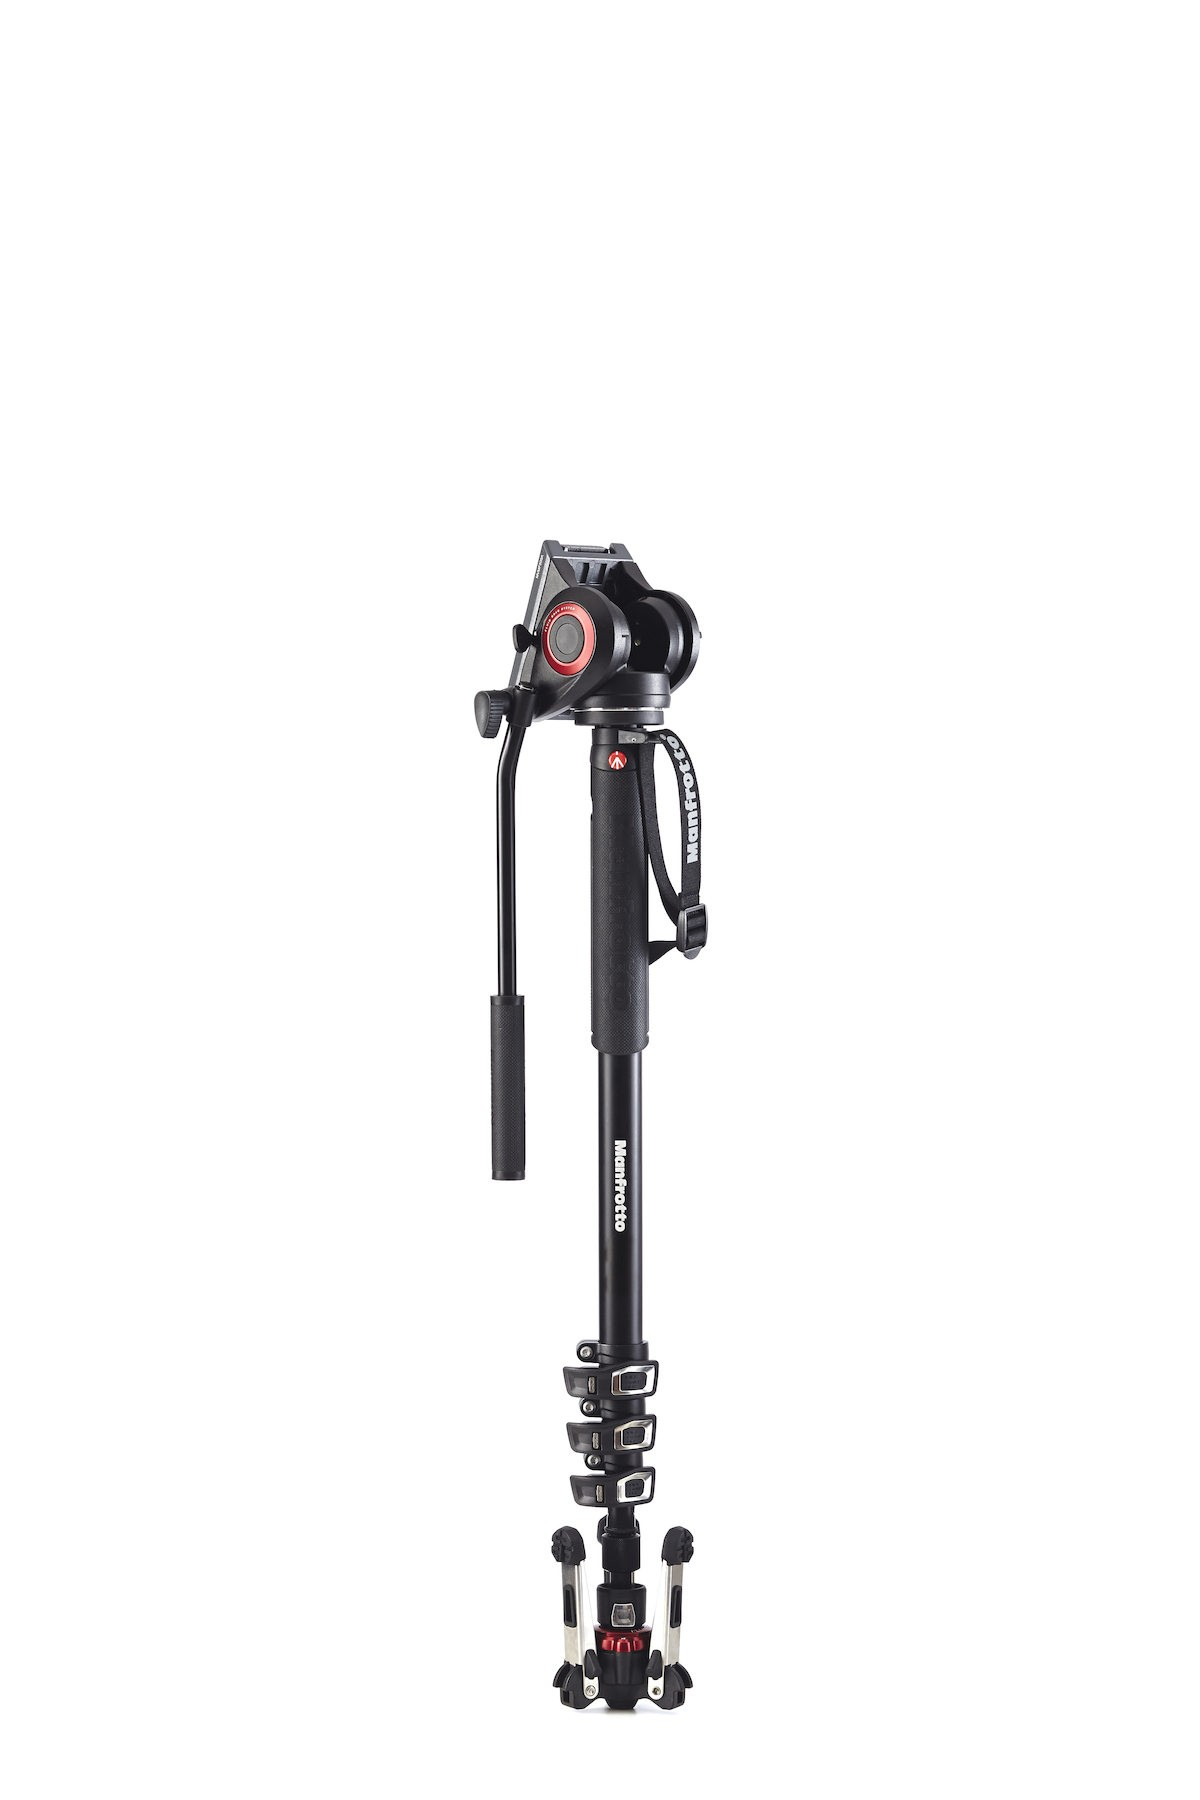 (9.9) MANFROTTO XPRO Monopod+ Four-Section Alu w/ Fluid Video Head MVMXPRO500 (MVMXPROA4 + MVH500)